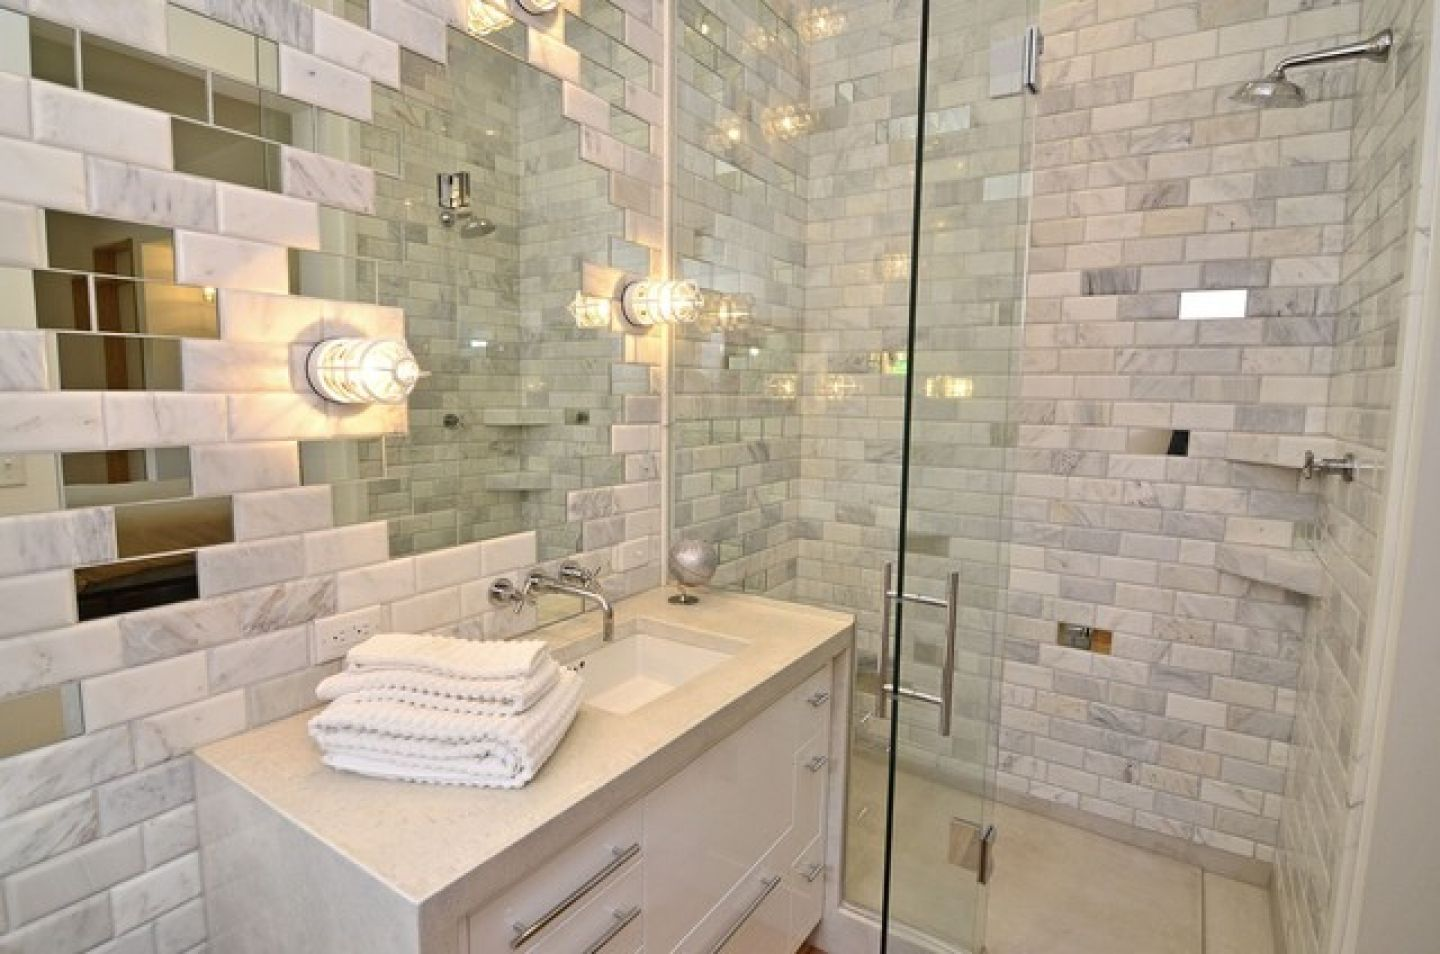 Awesome ... Mirror Tiles Ideas For Modern Interior Design. Nice Glass And Tile  Trimmed Bathroom Nice Look